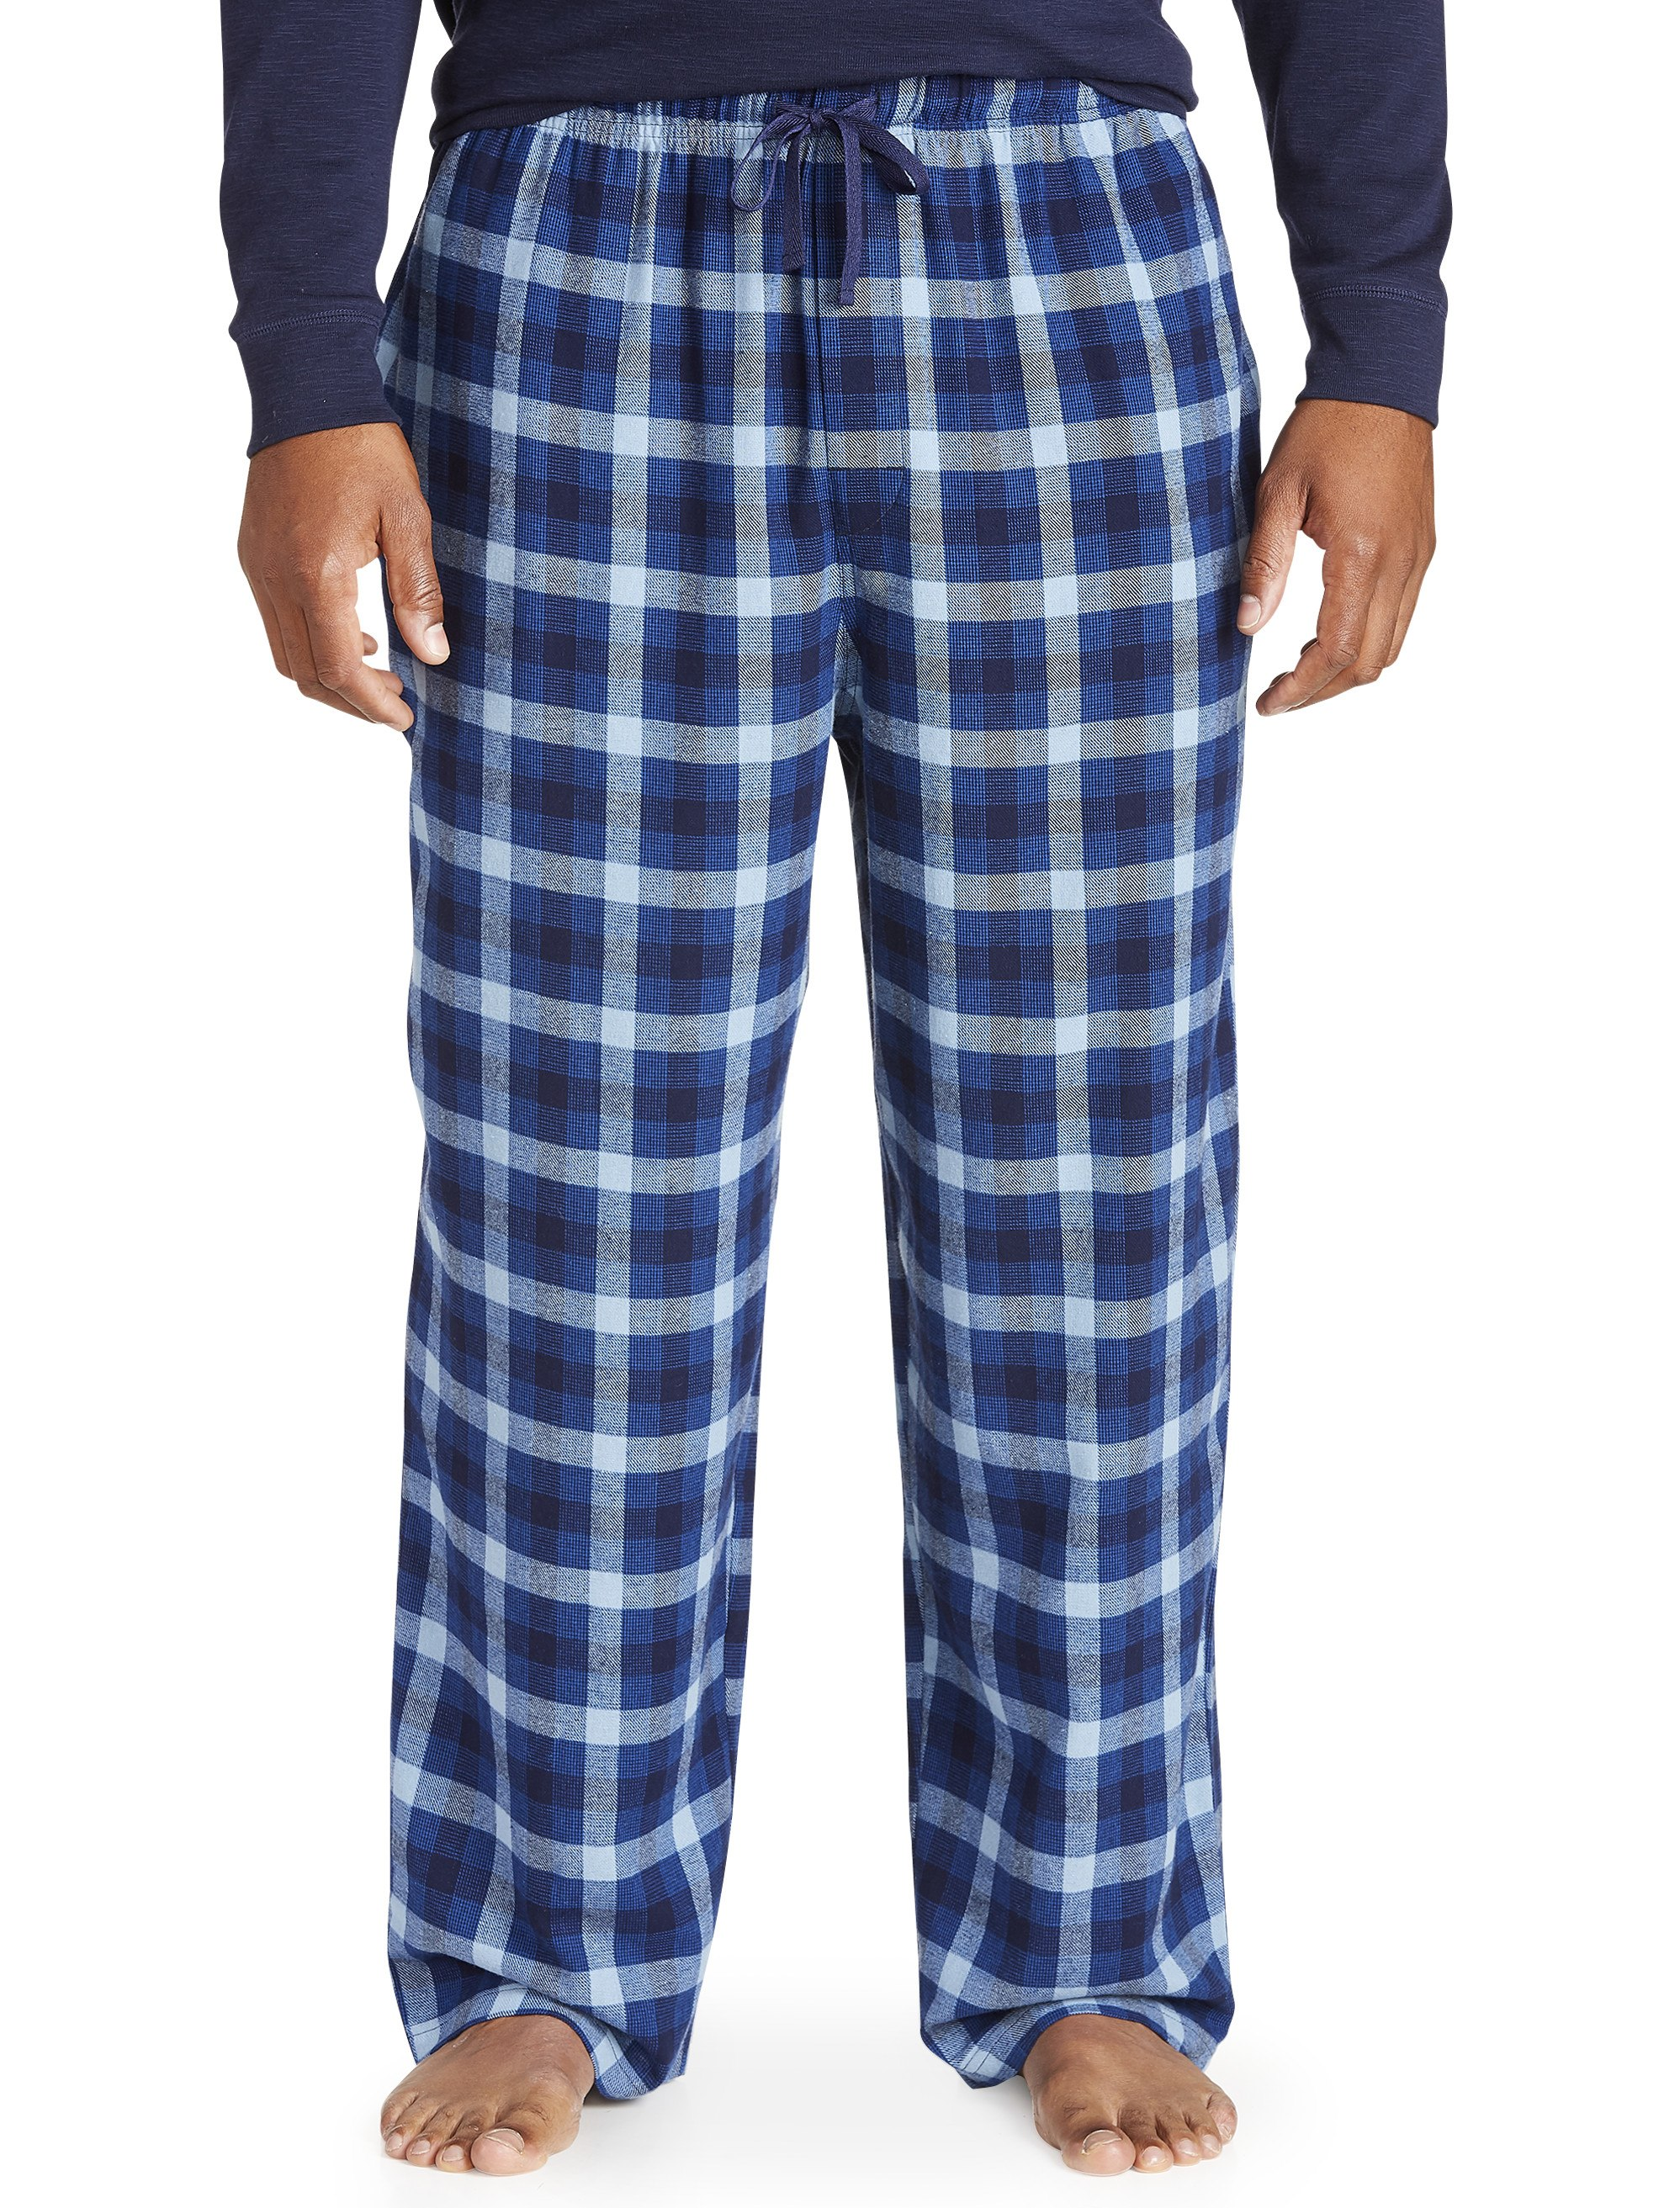 Men's Big & Tall Harbor Bay Flannel Lounge Pants